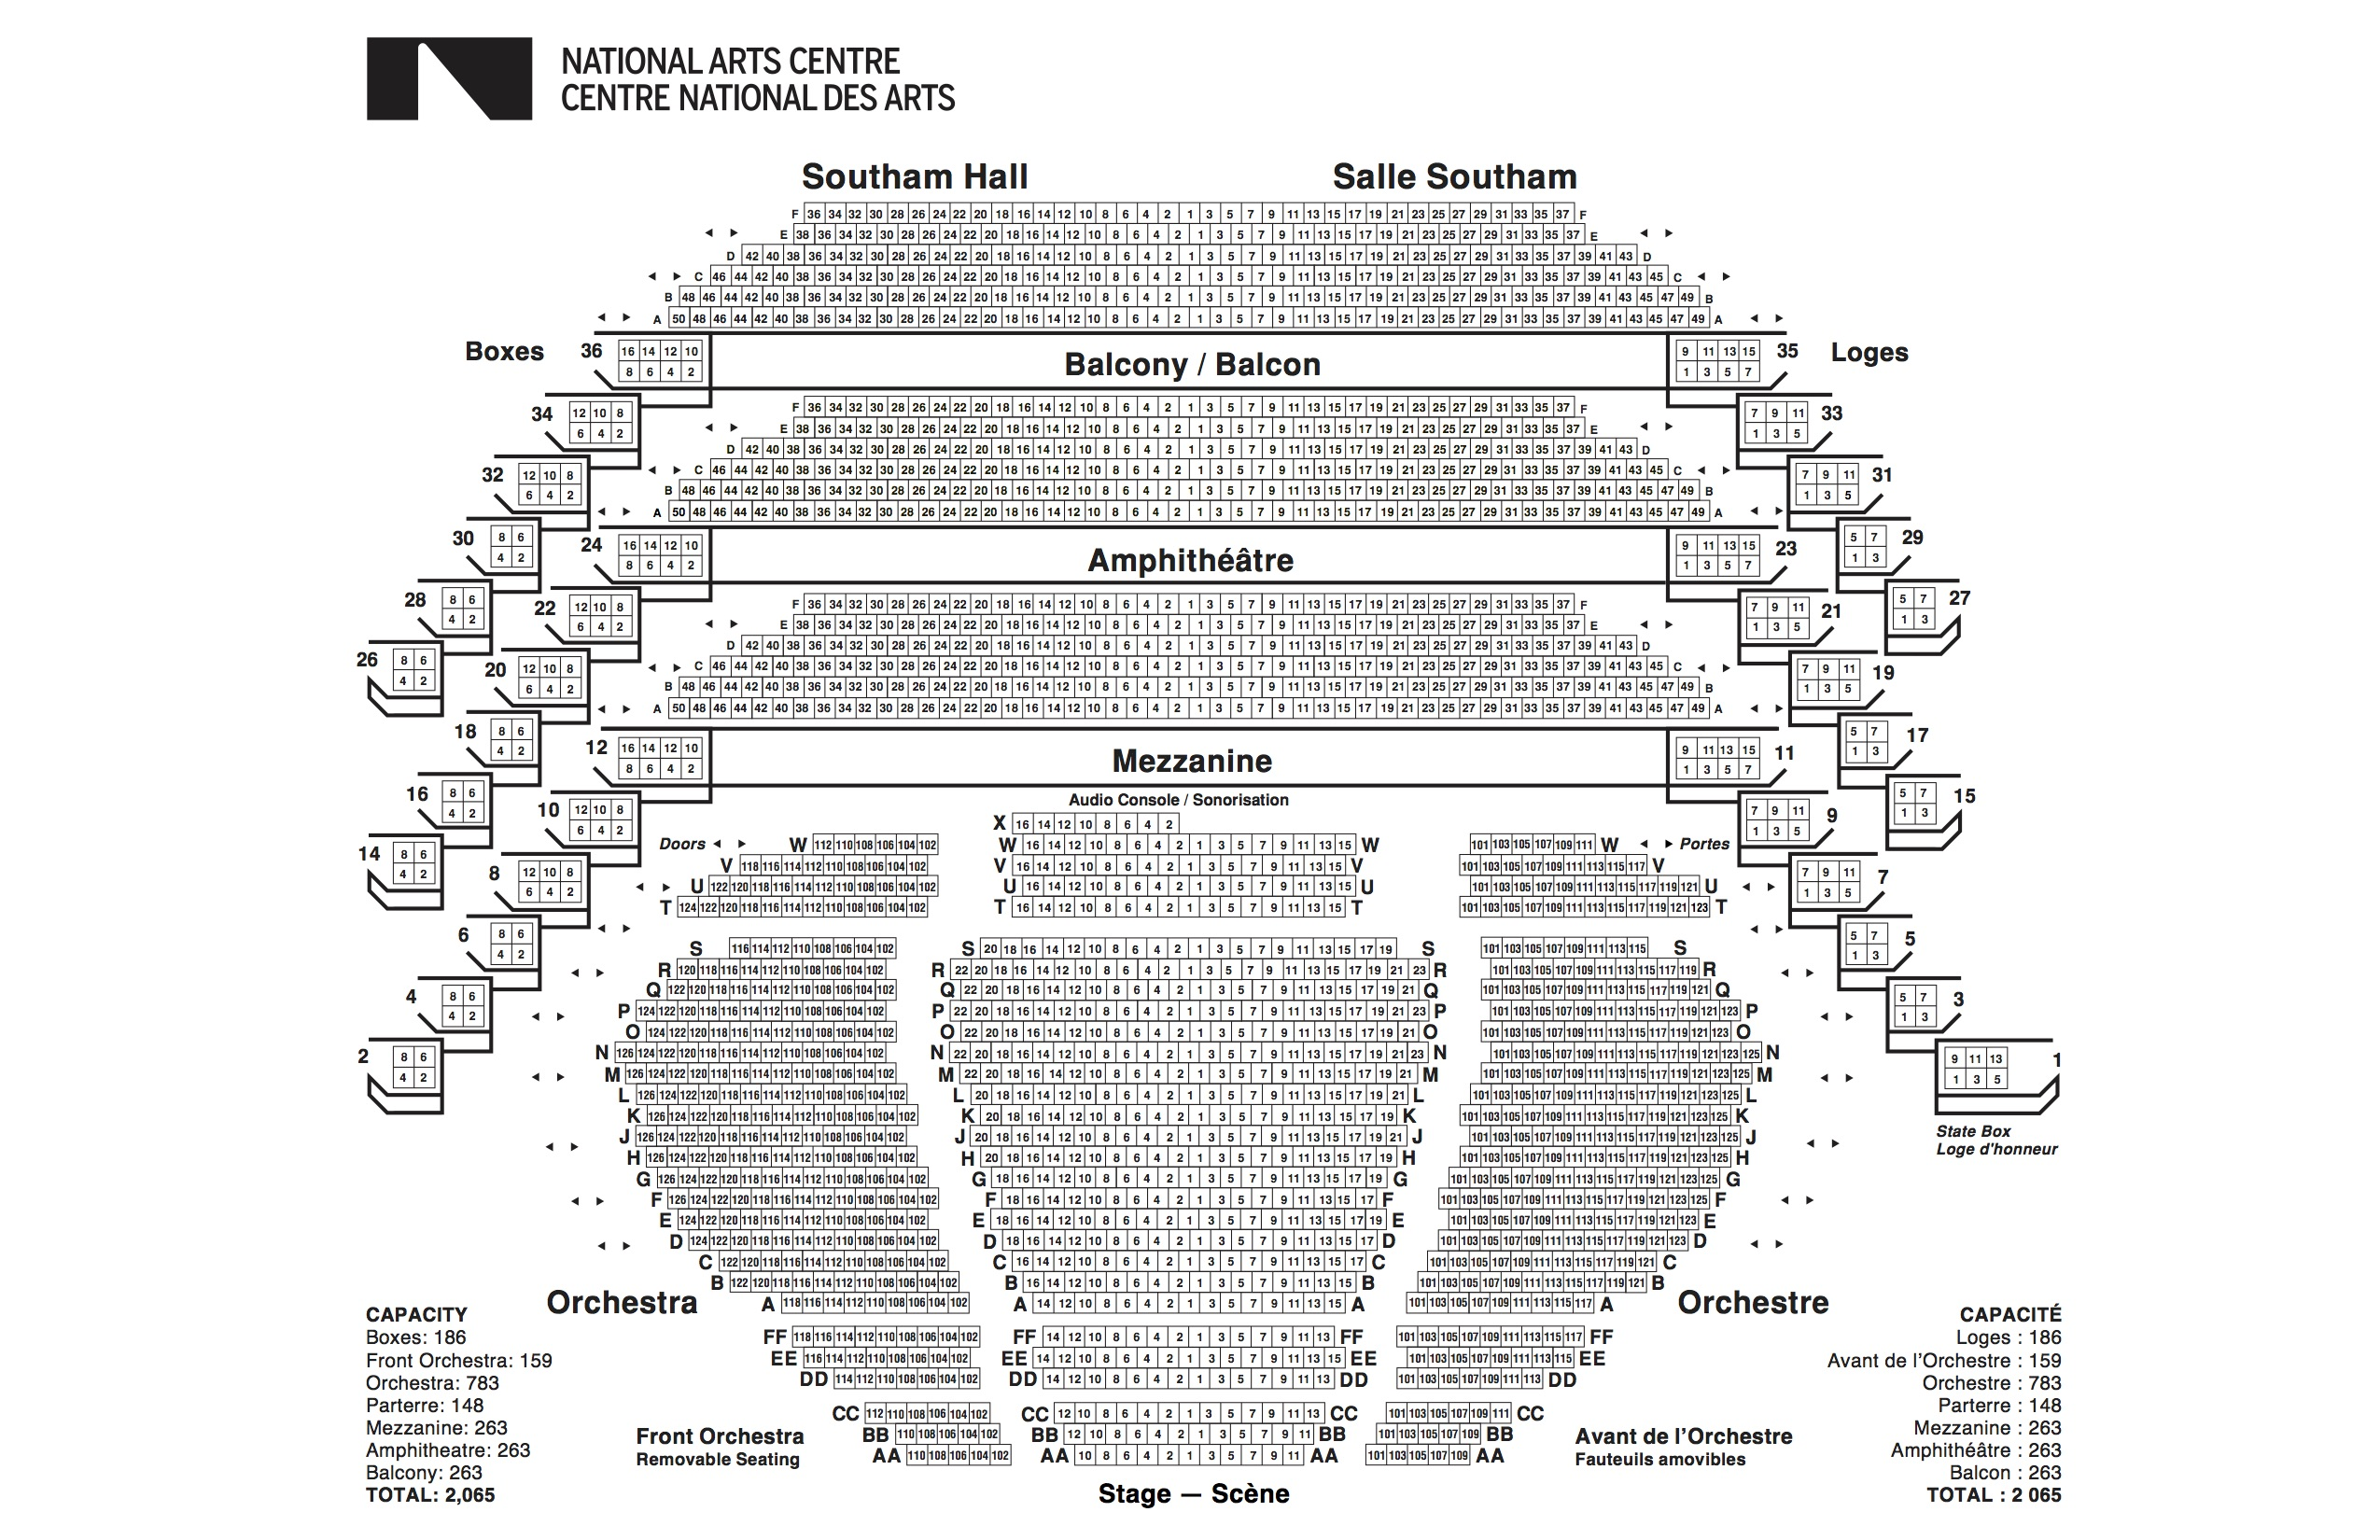 Seating Plans National Arts Centre